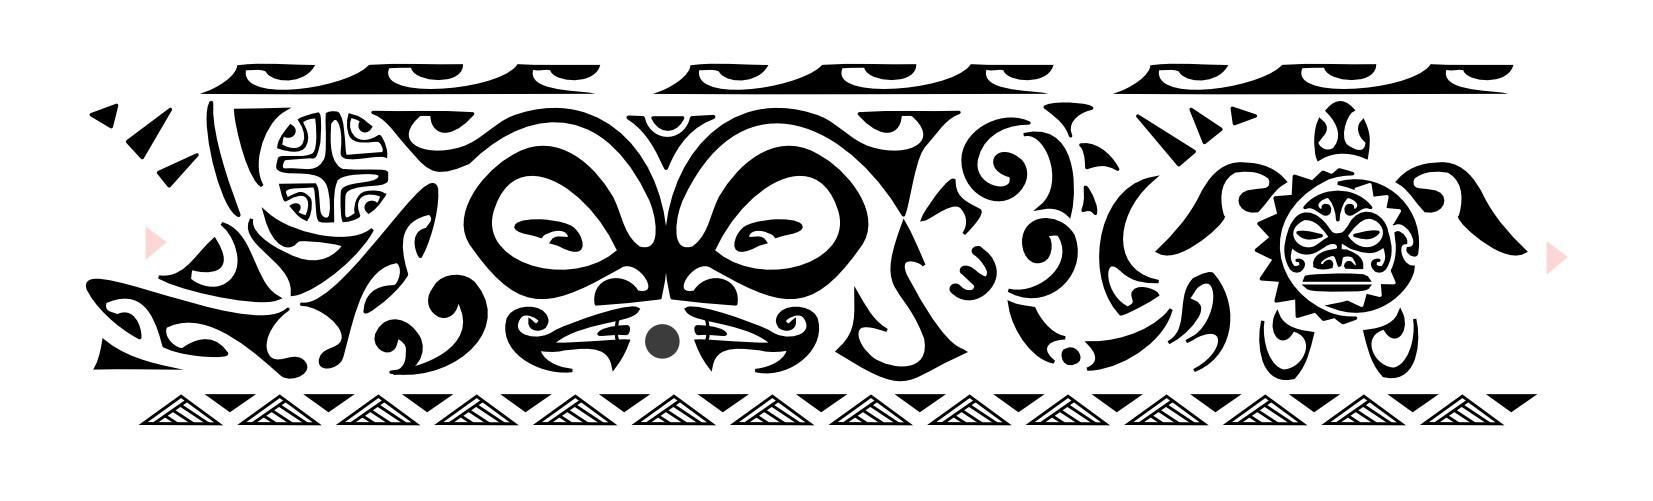 Tribal armband tattoo design tattoo pinterest tribal armband tattoo tribes tattoo of polynesian ankle band protection balance tattooankleband tiki turtle manta tattoo royaty free tribal tattoos with meaning buycottarizona Choice Image